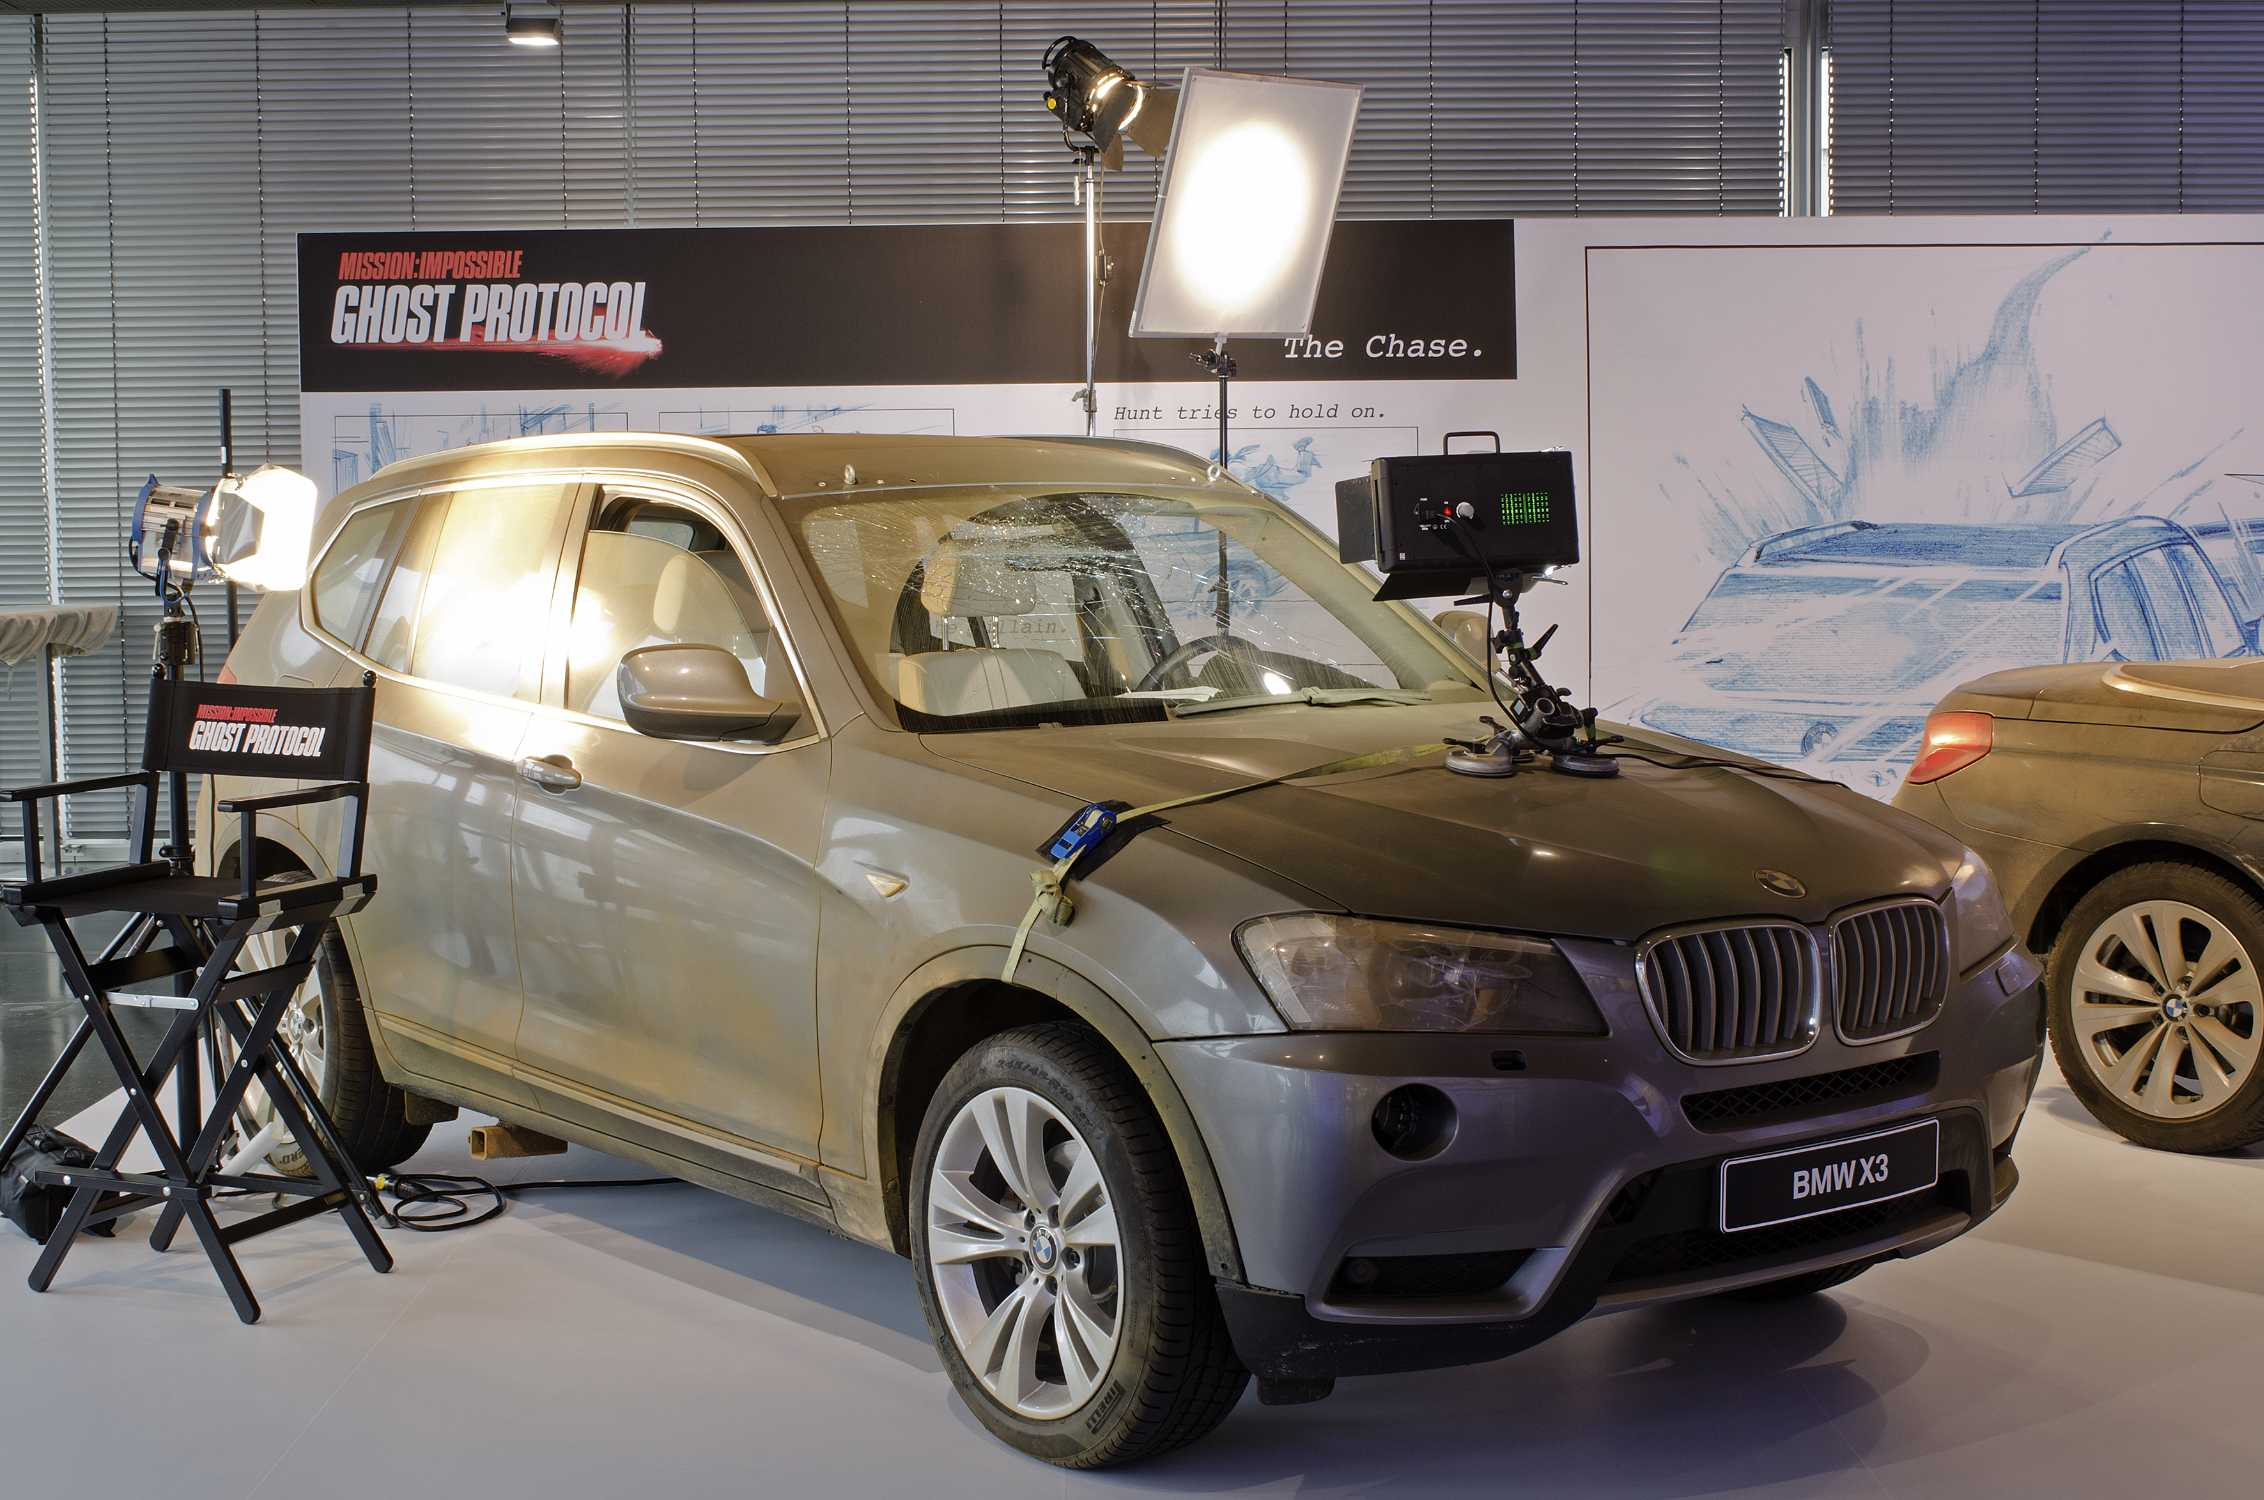 Mission Impossible Ghost Protocol The Movie Car Bmw X3 12 2017